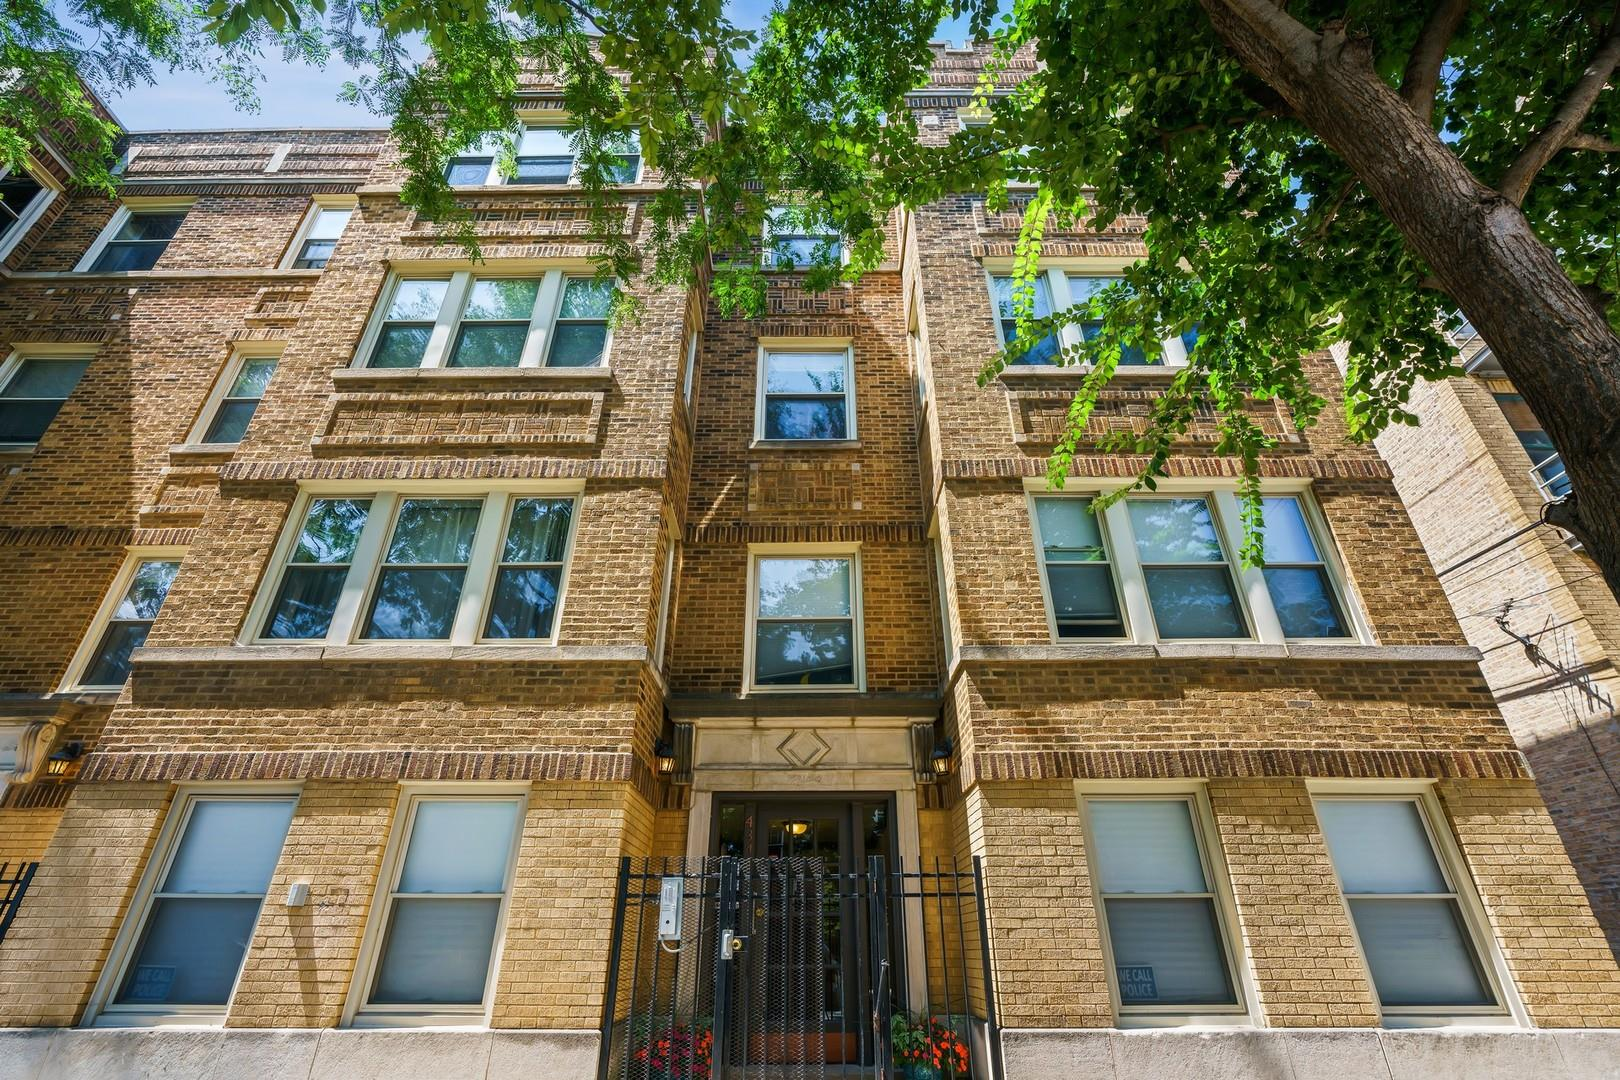 4344 N SPAULDING Avenue #2, Chicago, IL 60618 - #: 10876626